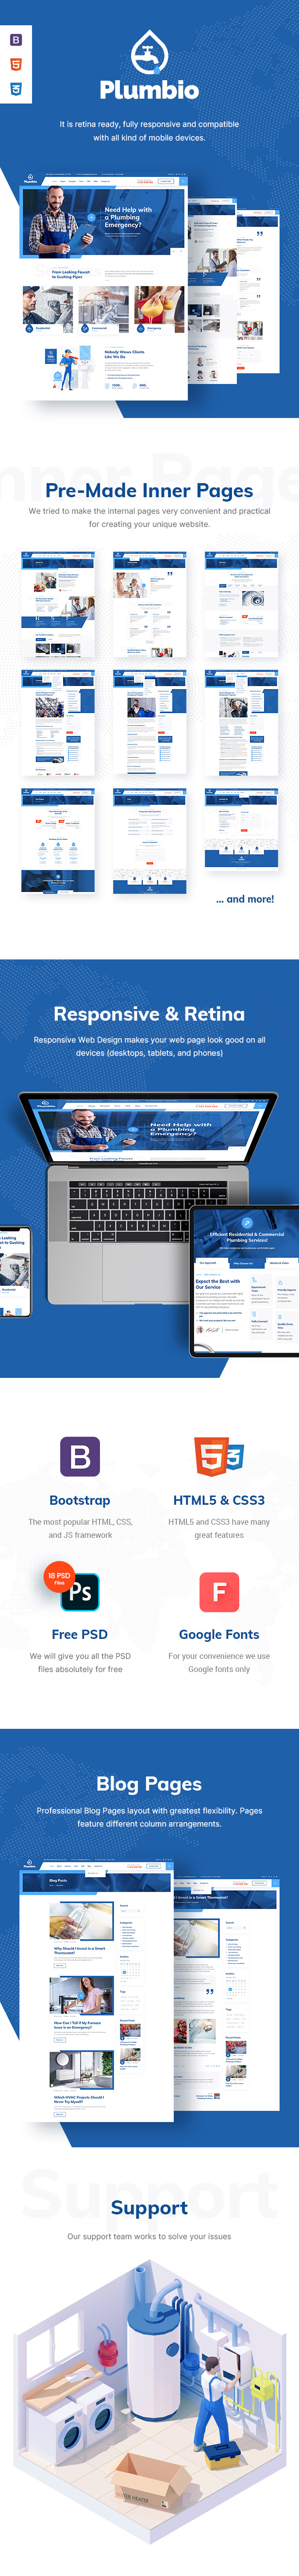 Plumbio - Plumber and Plumbing Services HTML Template - 1